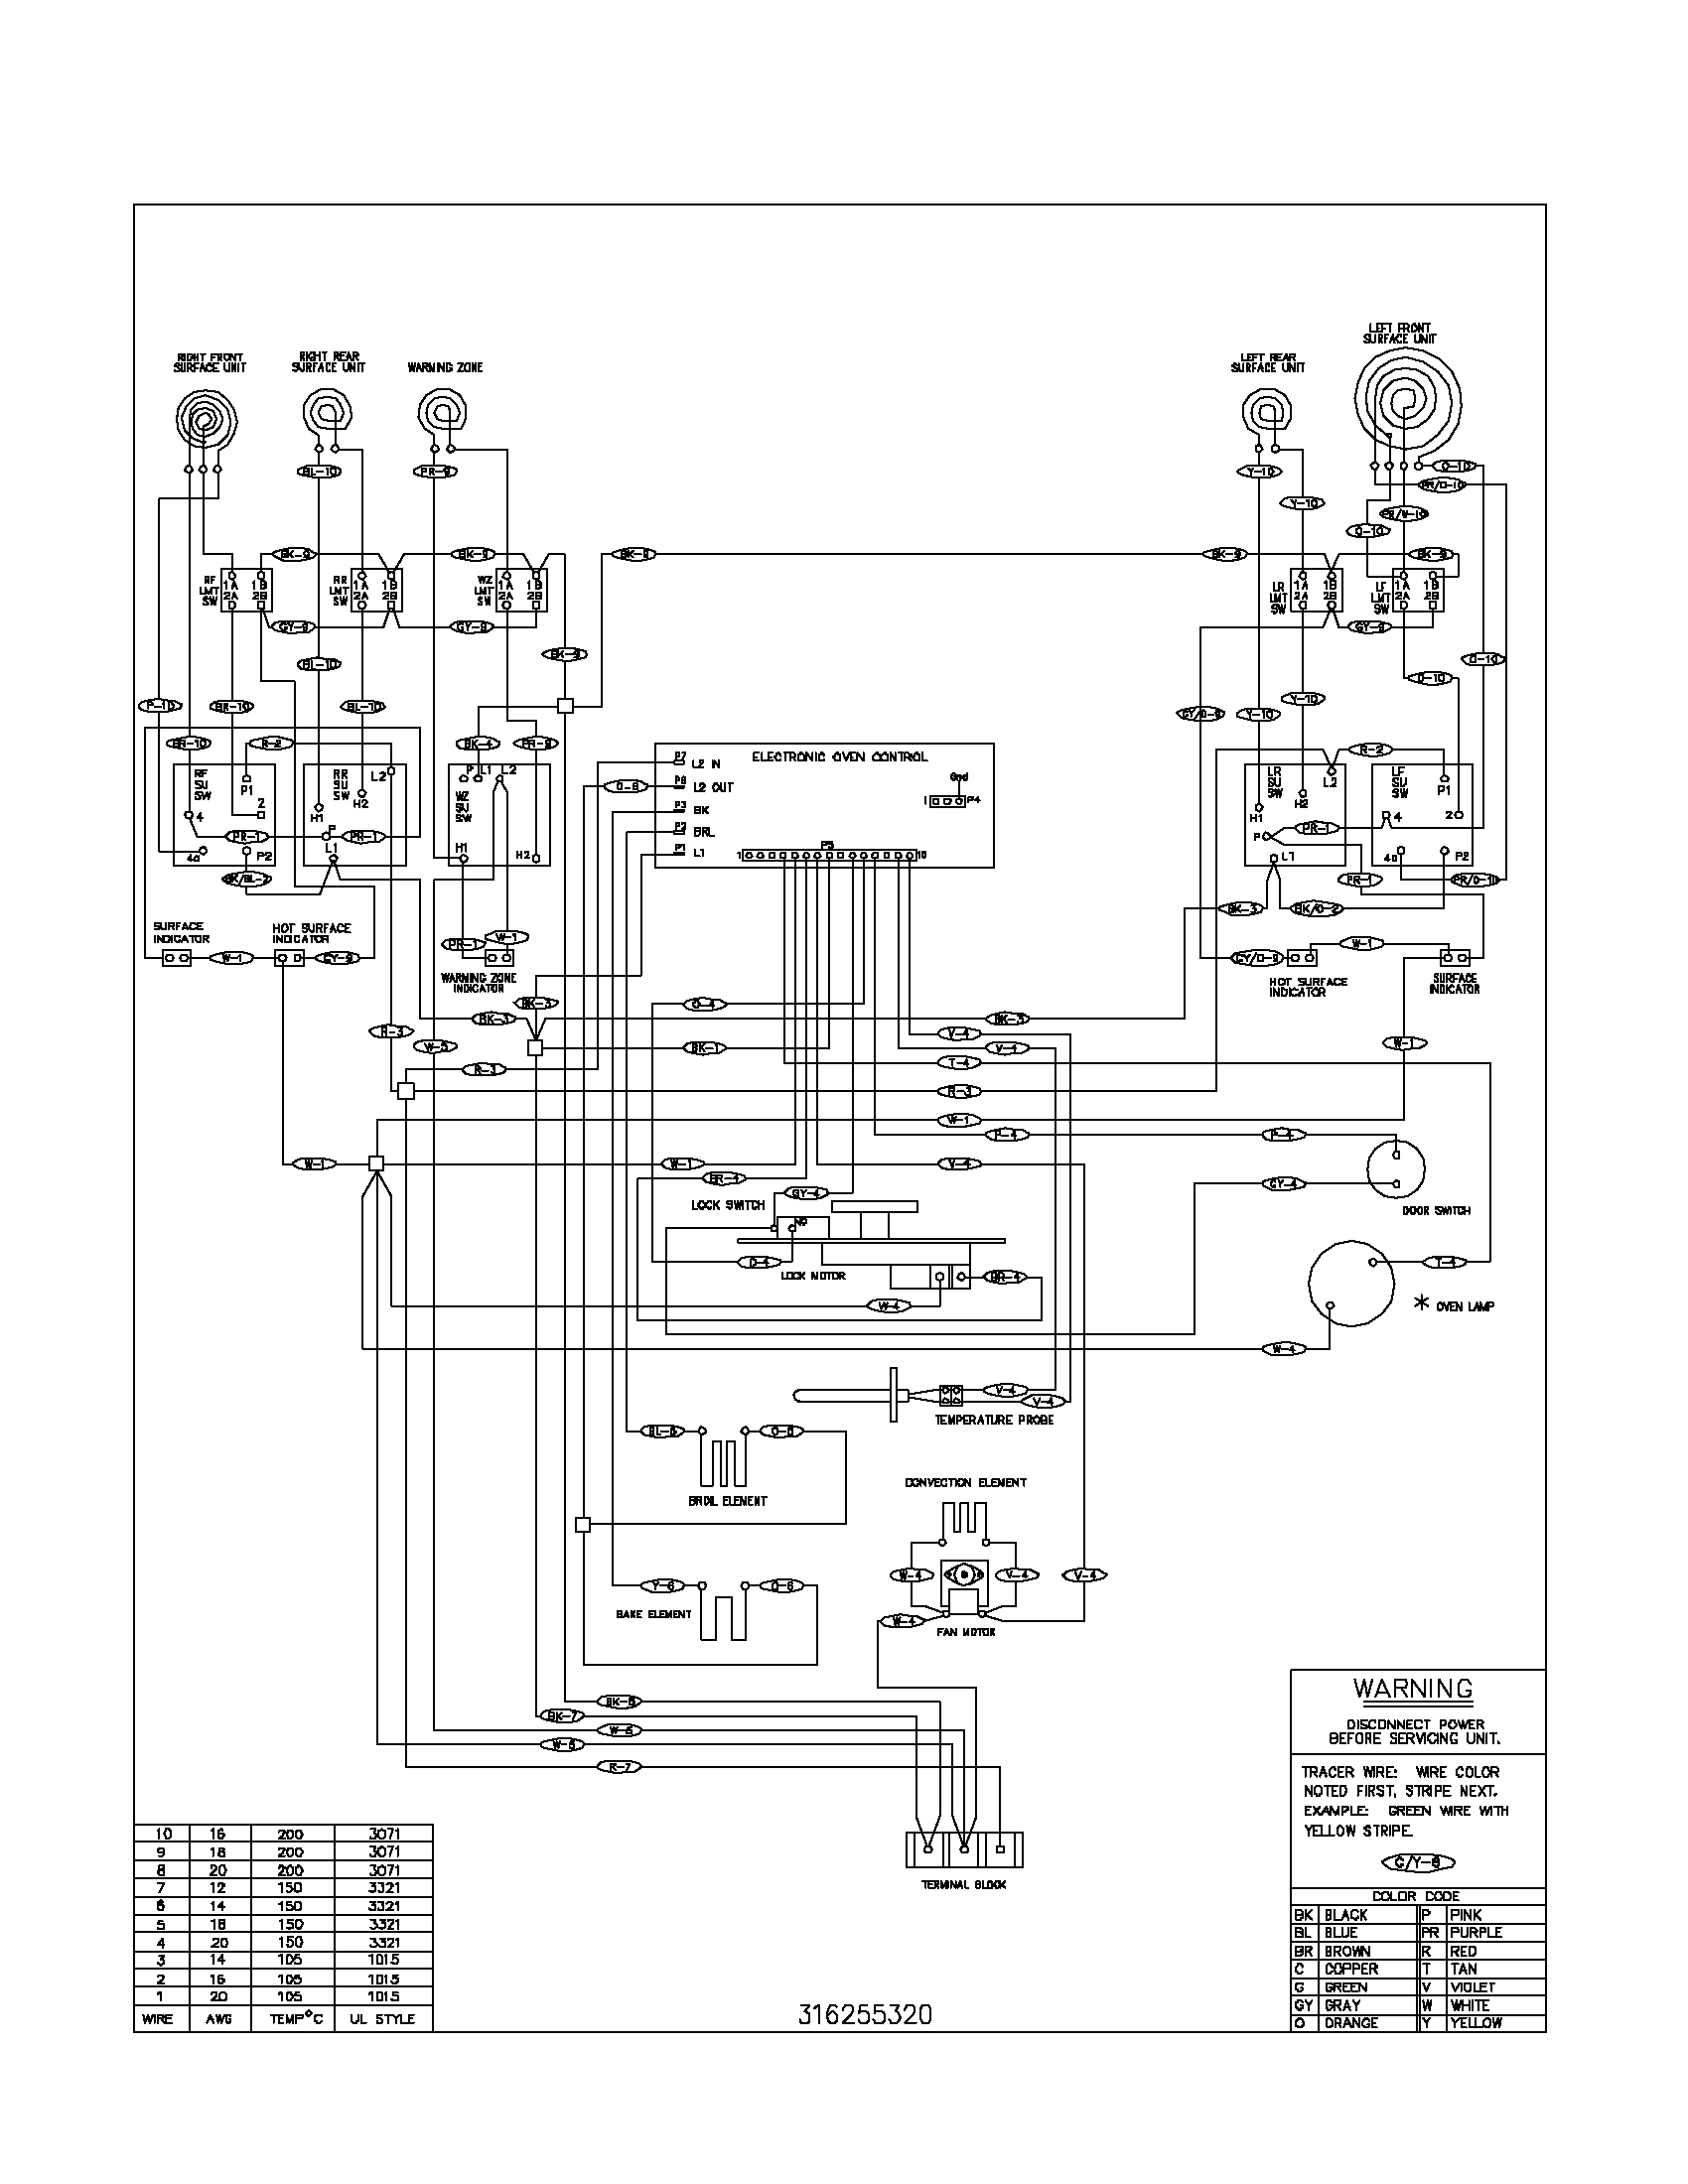 electric range wiring schematic circuit diagram schematic how microwaves  work diagram oven range wiring diagram wiring